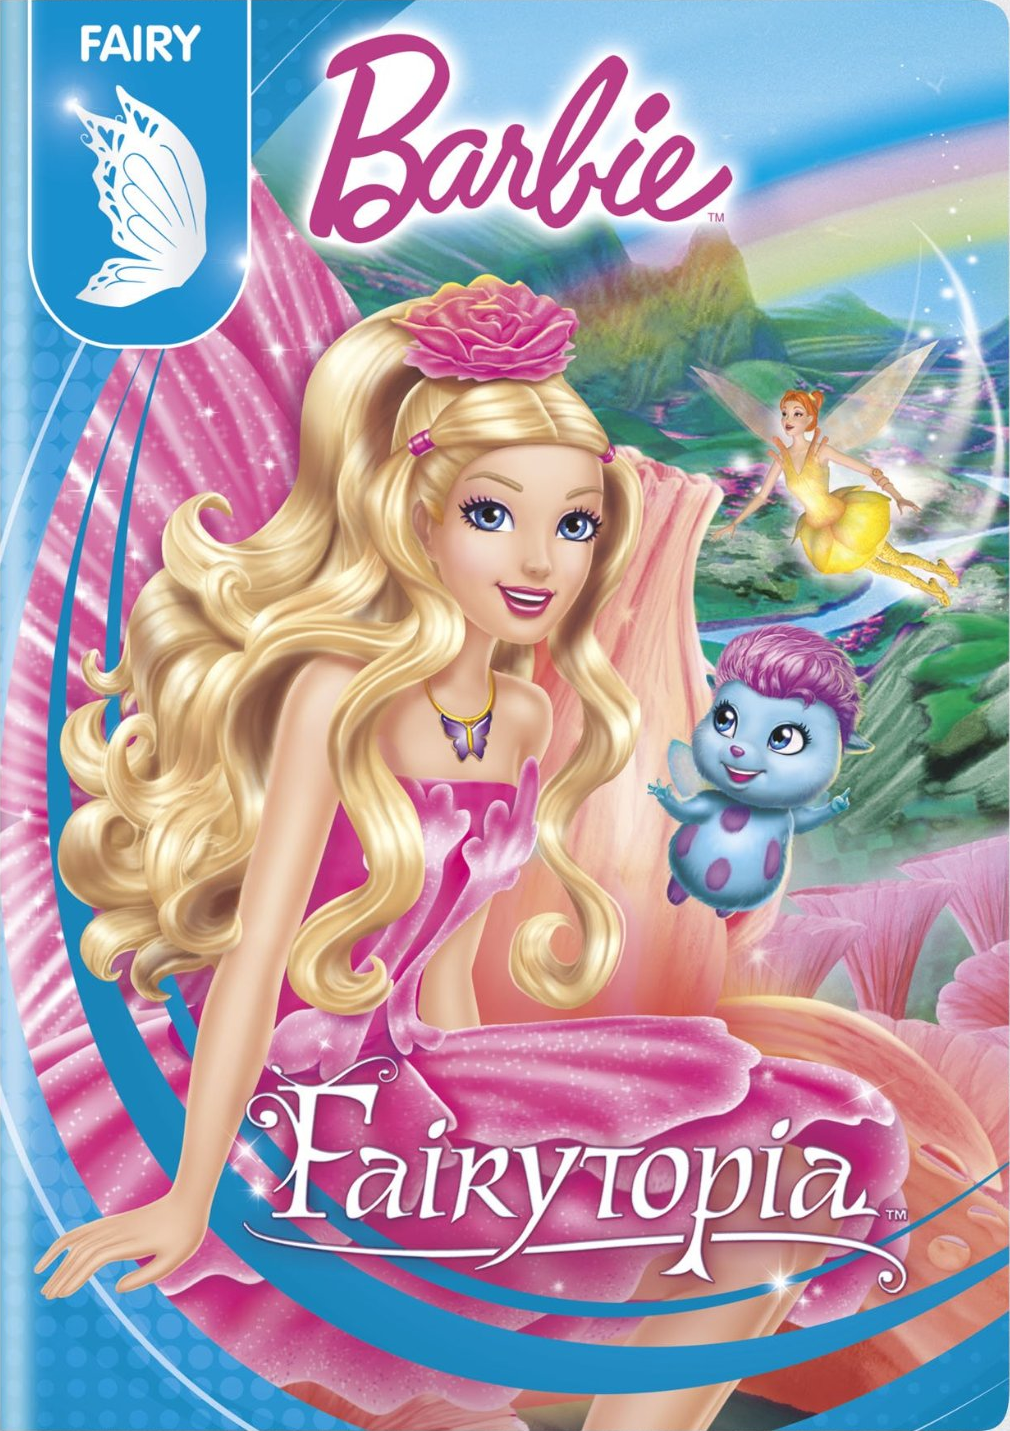 Barbie fairytopia movie barbie wiki fandom powered by wikia barbie fairytopia is the 5th cgi animated barbie movie it was released on vhs and dvd in spring 2005 it was later released digitally voltagebd Image collections